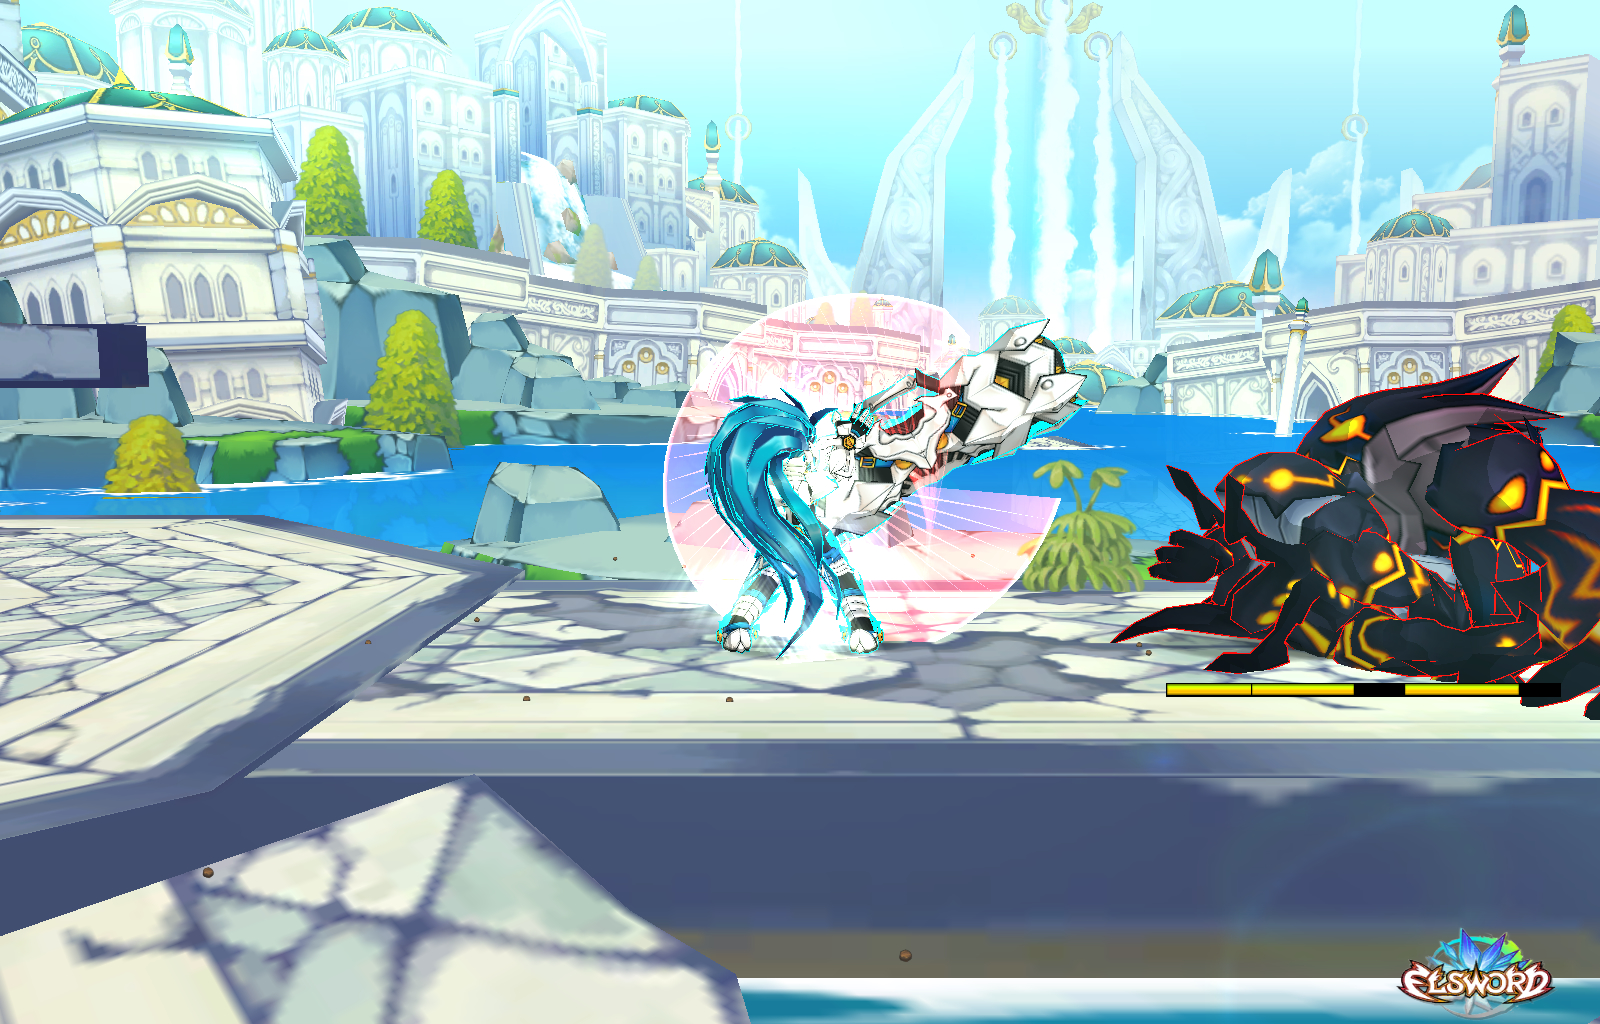 elsword_screenshot04